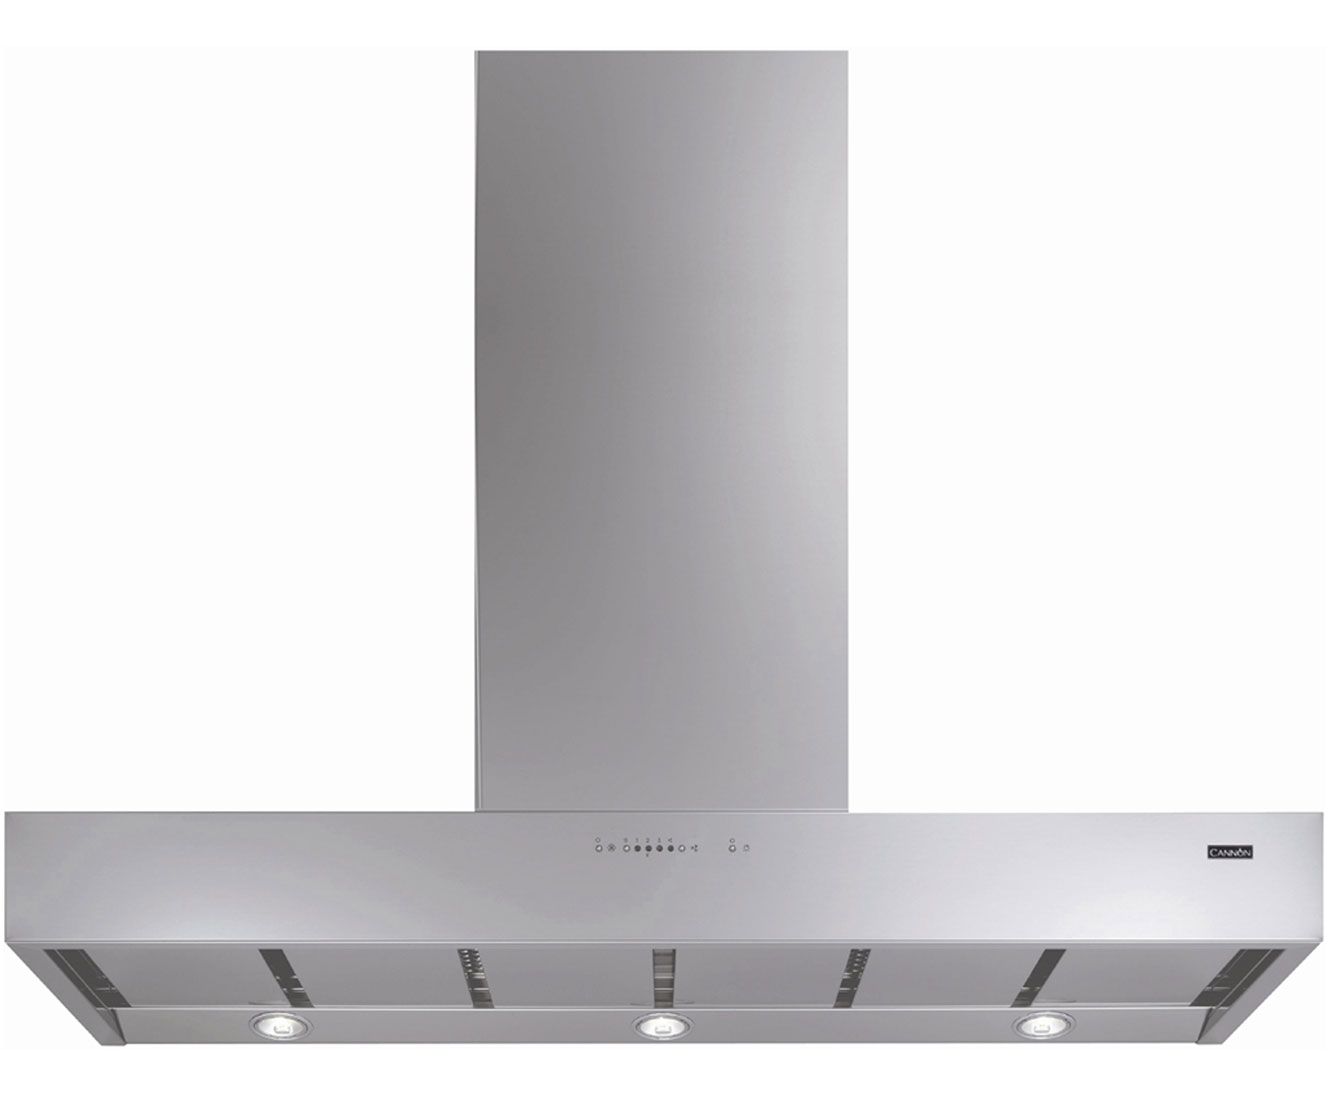 Cannon by Hotpoint BHC110 Integrated Cooker Hood in Stainless Steel